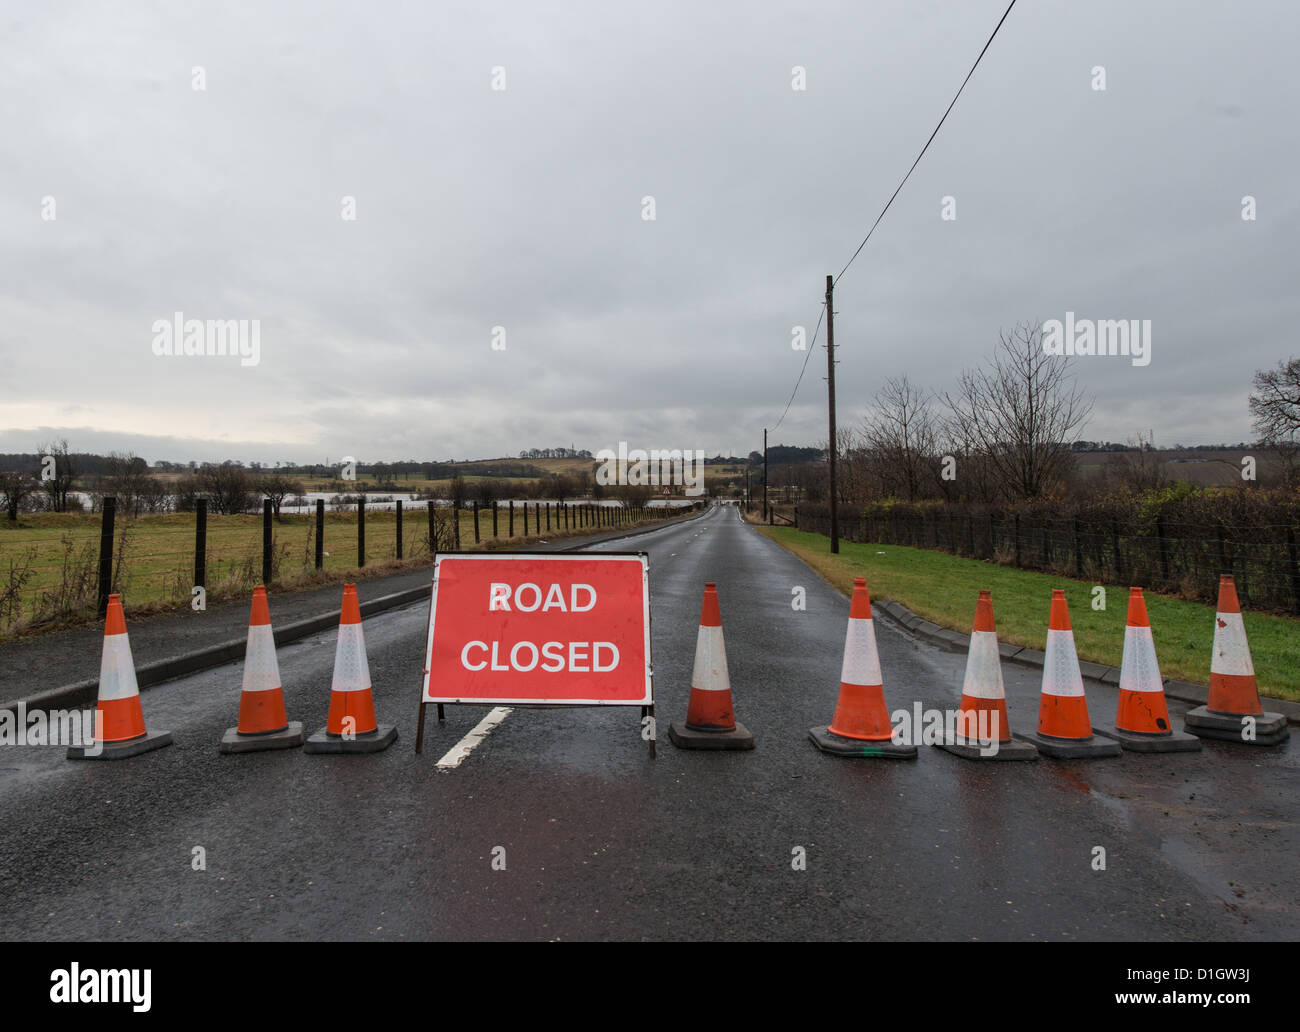 Road Closed sign and Traffic Cones - Stock Image